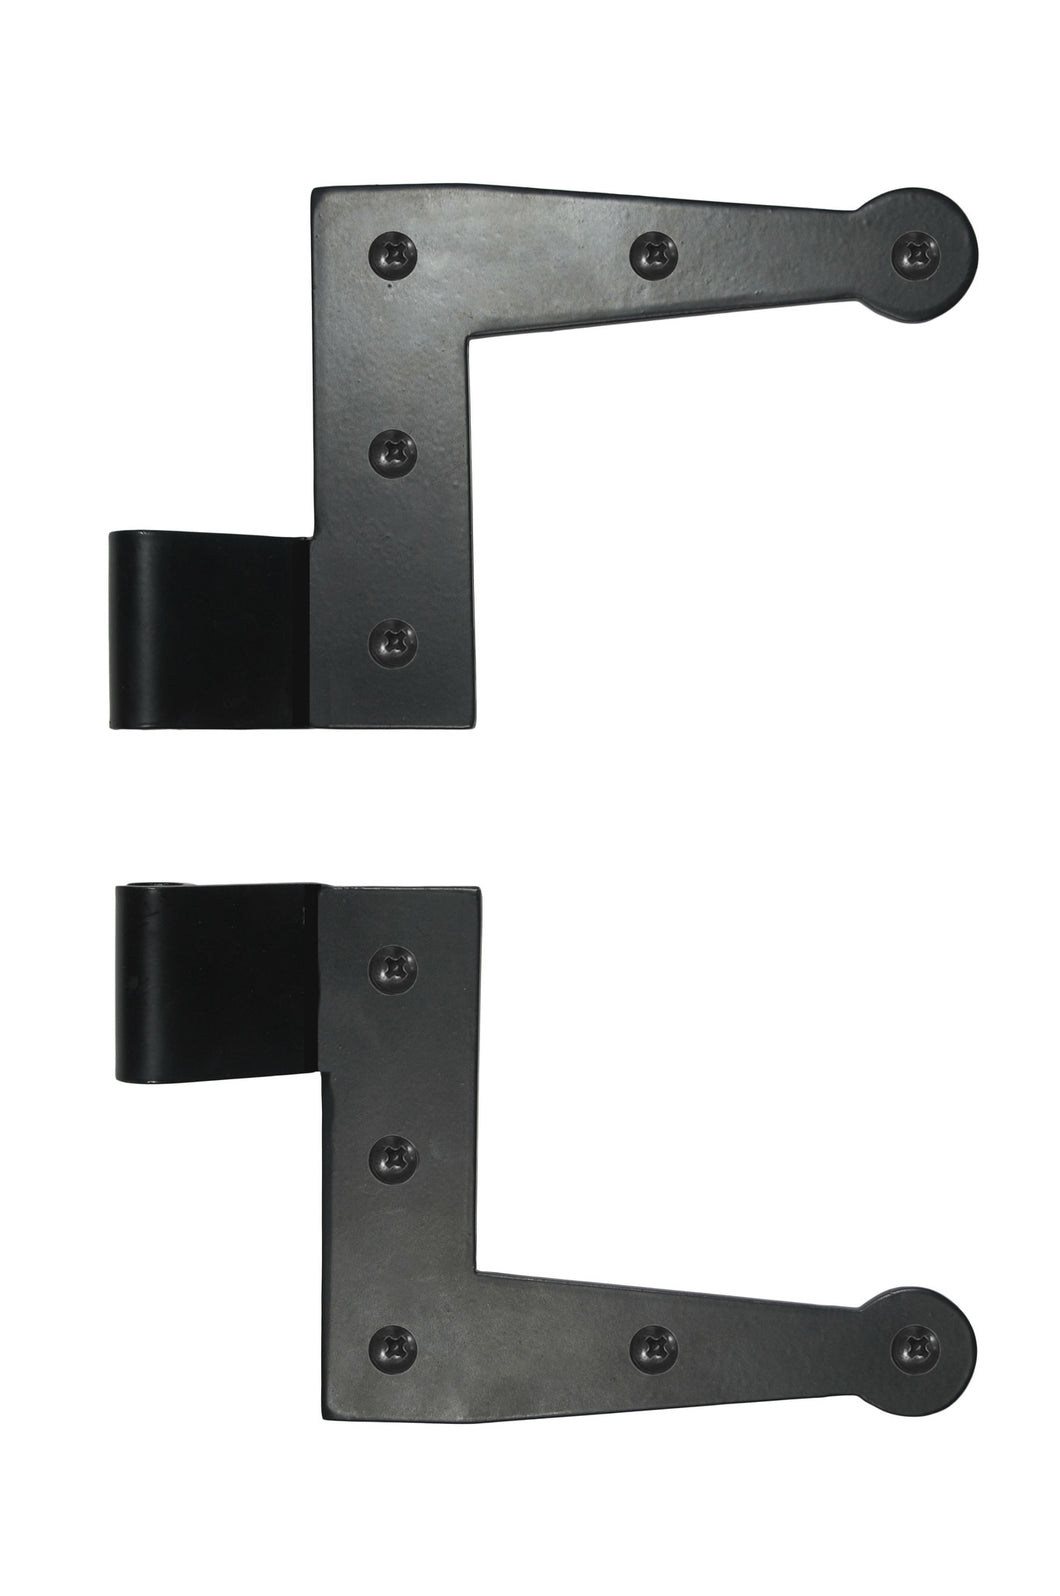 Suffolk Style L Hinge - 2 1/4'' Offset | Hardware